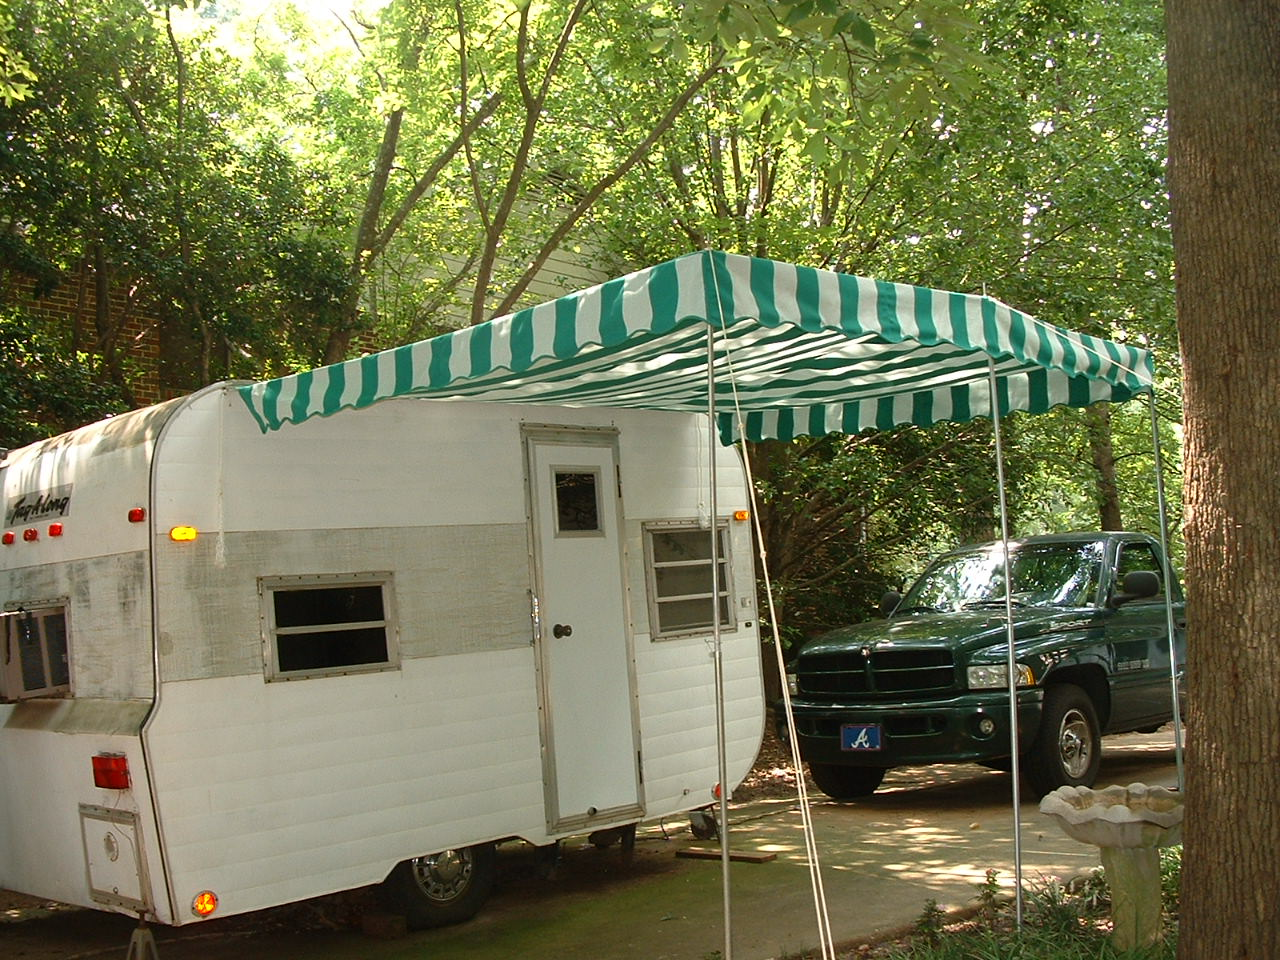 Vintage Trailer Awnings - Free Ass Video